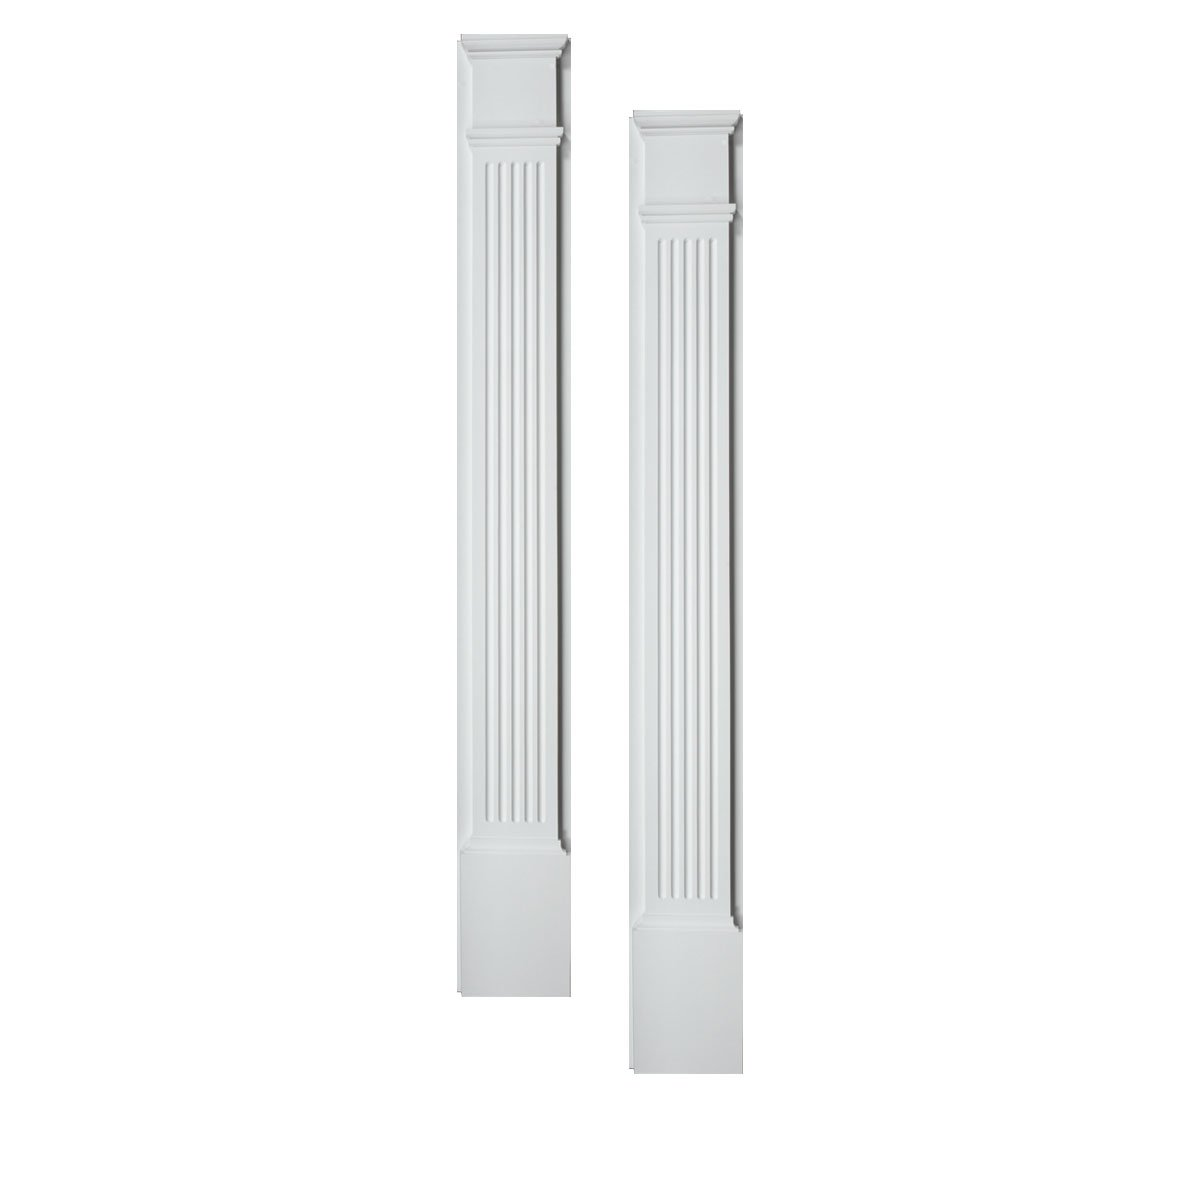 Fypon PIL4X86 4 1/2''W x 86''H x 1 5/8''P Fluted Pilaster, Moulded with Plinth Block (Set of 2), 1 Piece